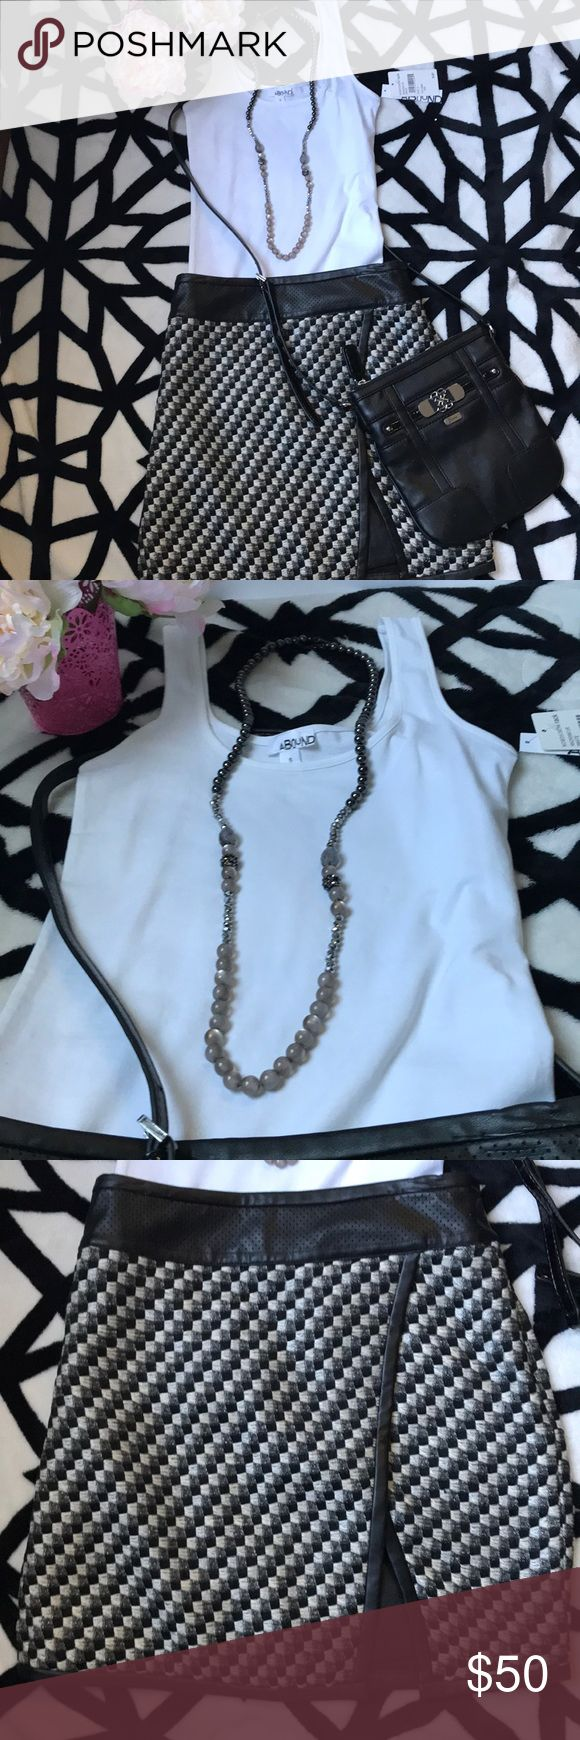 🔥3 in 1 - GUESS bag, ANN TAYLOR skirt & ABOUND🔥 🛍🛍ATTENTION!!! 3 in 1  ⭐️White T-Shirt - ABOUND from Nordstrom Rack. Size S. New with tag ⭐️Elegant black leather mini skirt - ANN TAYLOR - size 6P Excellent conditions  ⭐️Black leather small handbag -GUESS - excellent condition  All for 48$!!!🛍🛍 Ann Taylor Skirts Mini